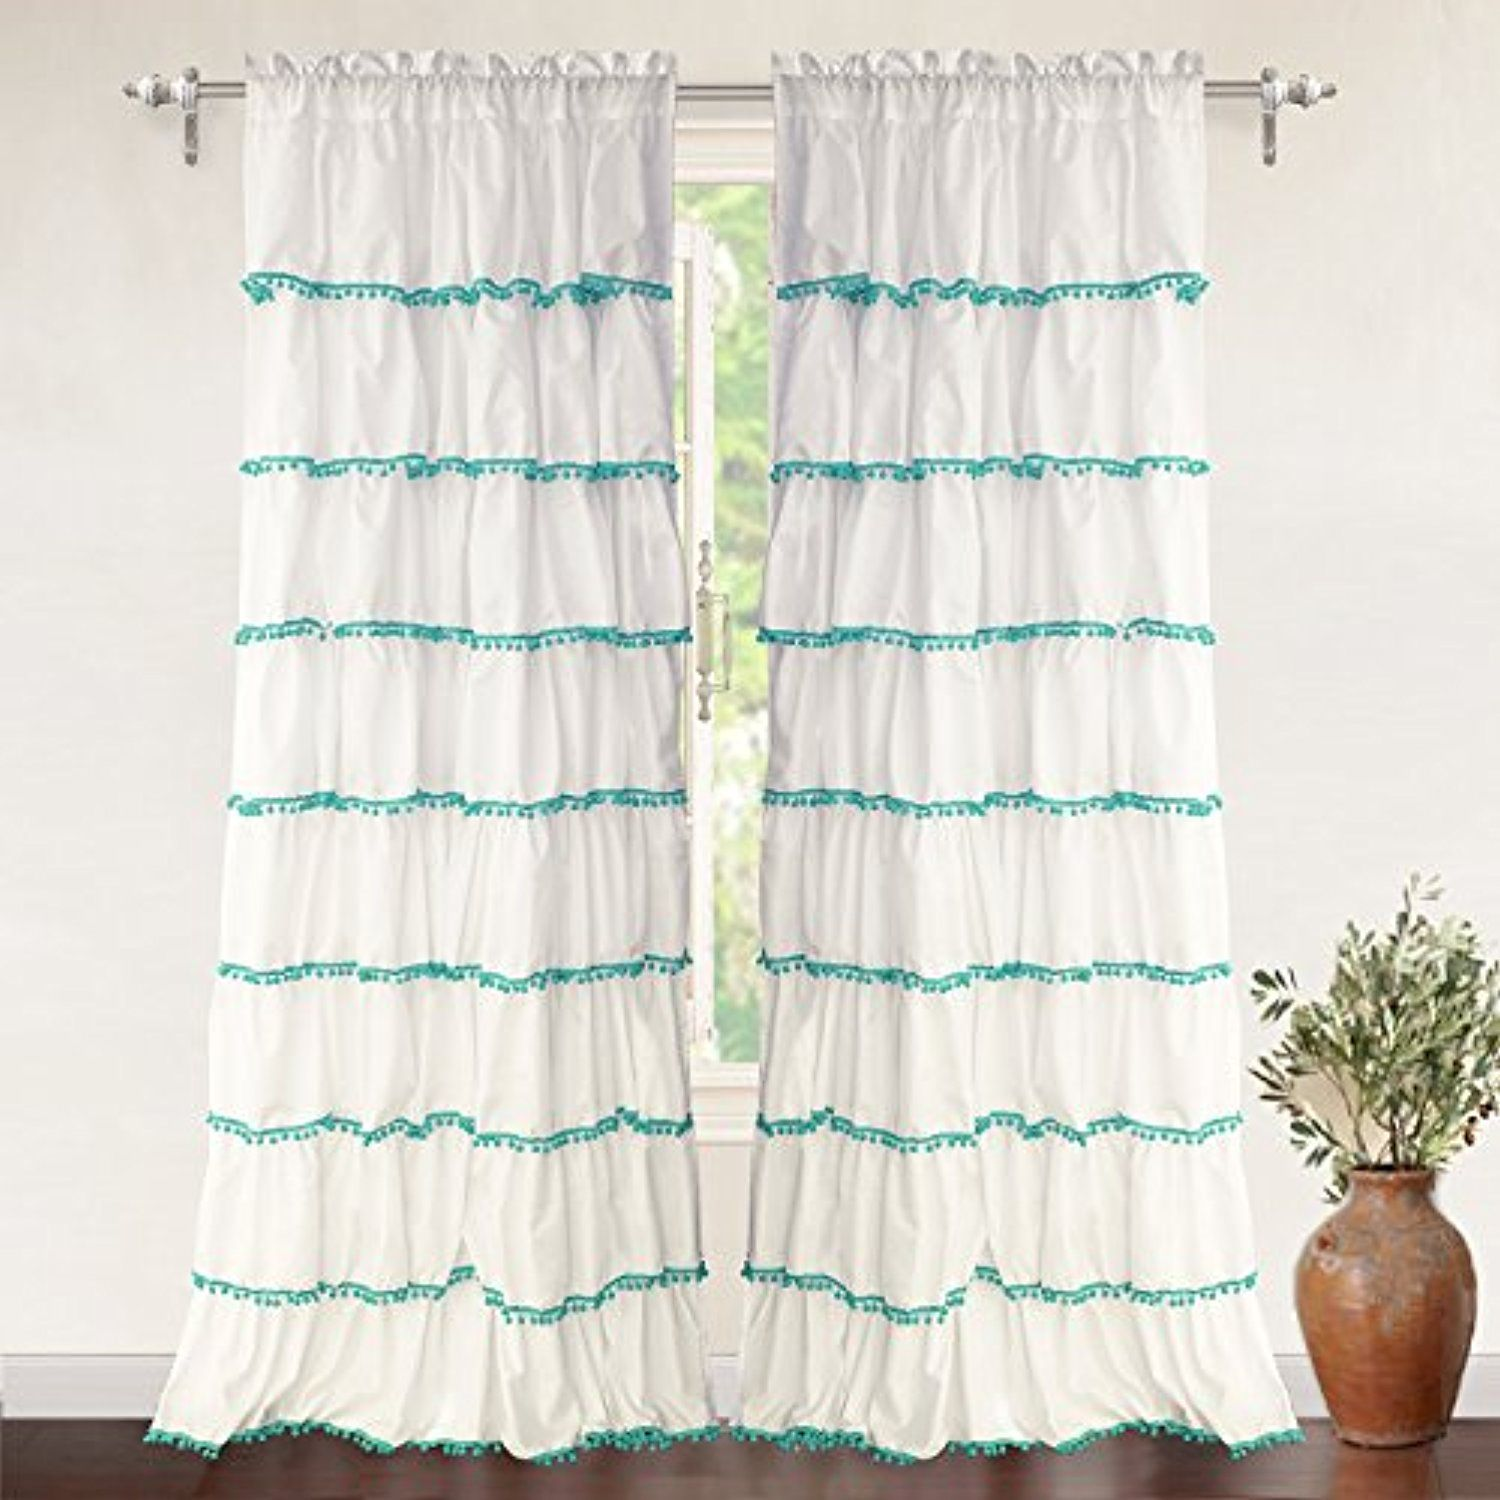 Driftaway Pom Ruffle Window Curtain Rod Pocket One Panel 52â X96â Plus 2 Header Aqua Be Sure To Check Out This Awesome Product